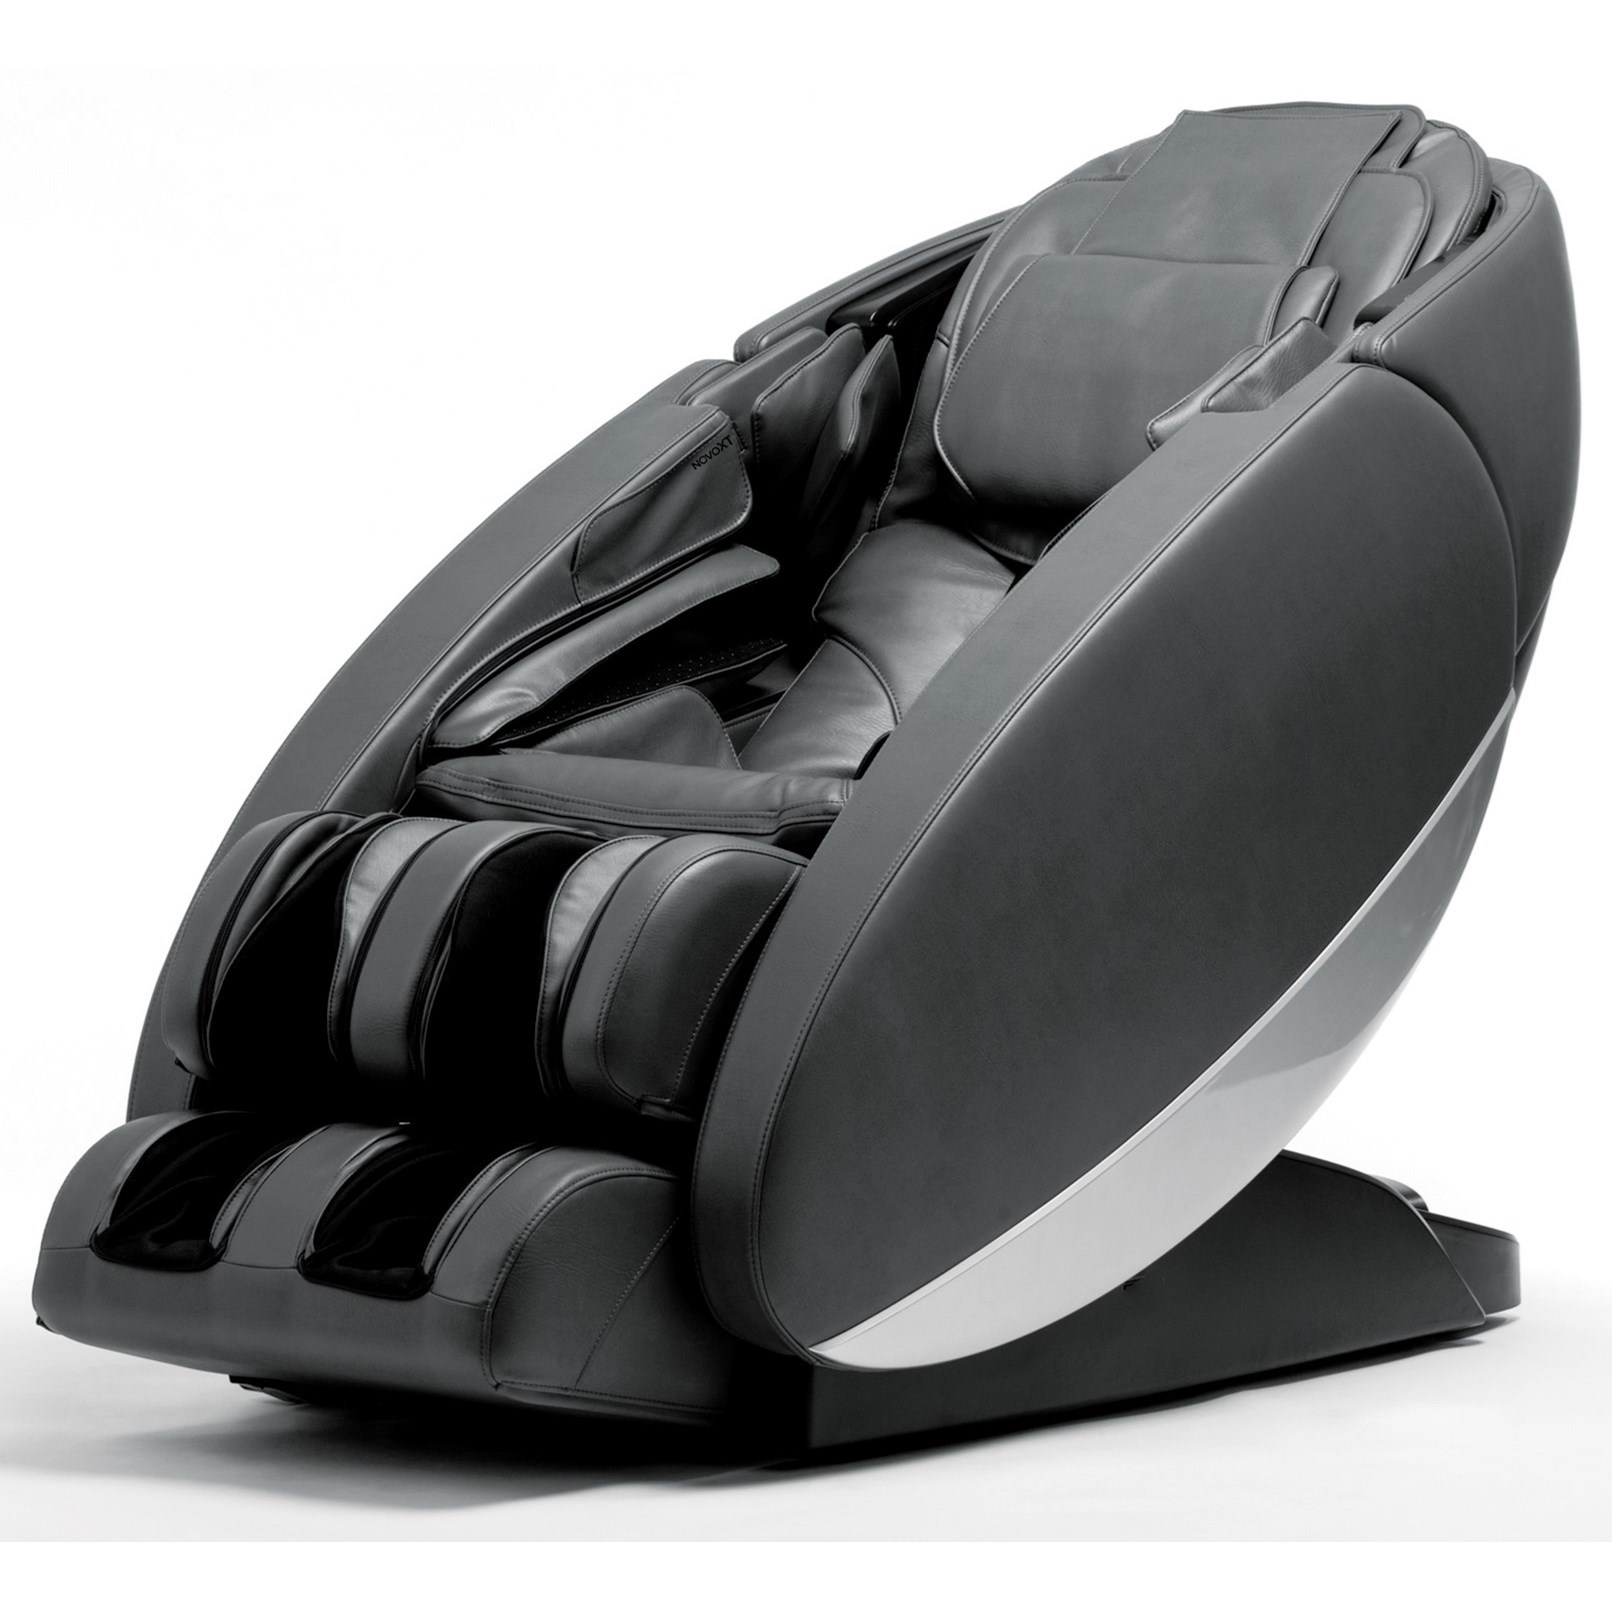 Human Touch Novo XT Massage Chair HomeWorld Furniture Three